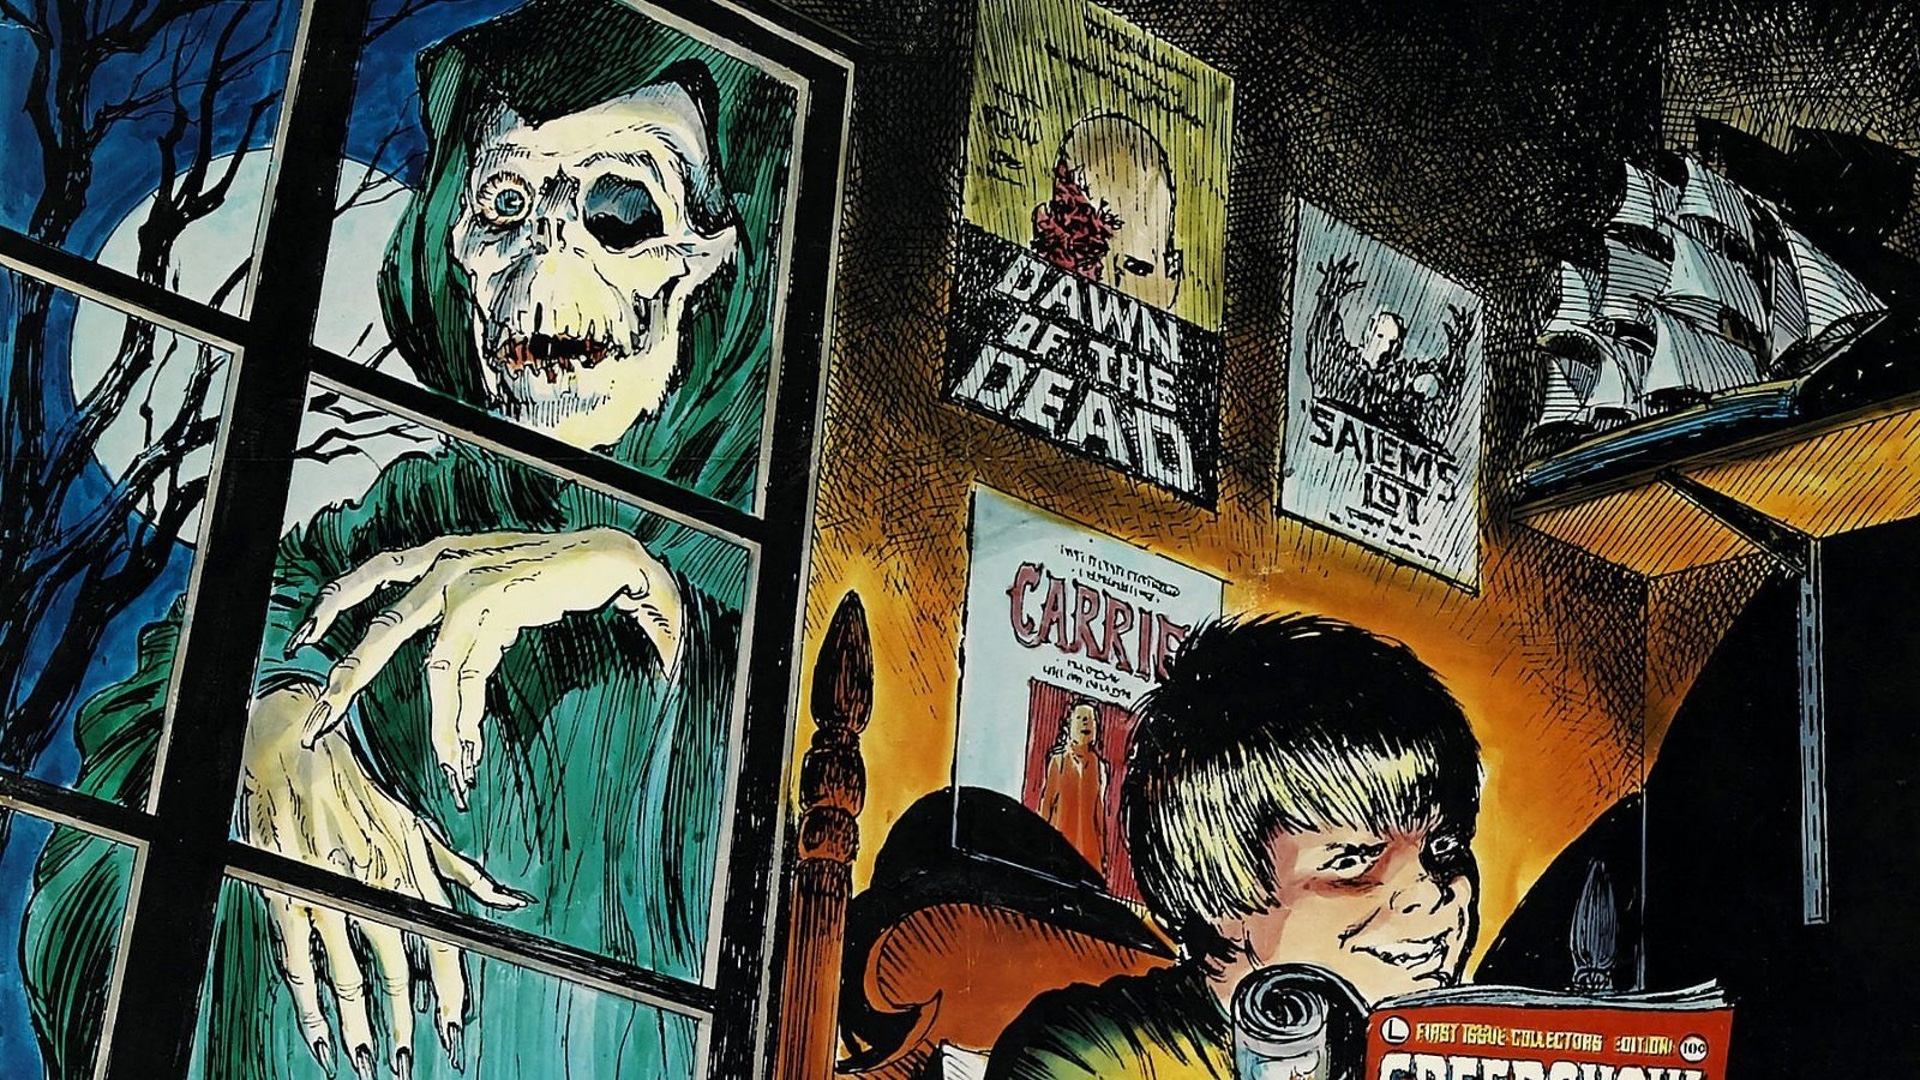 as-creepshow-starts-production-heres-information-on-the-horror-stories-being-adapted-social.jpg